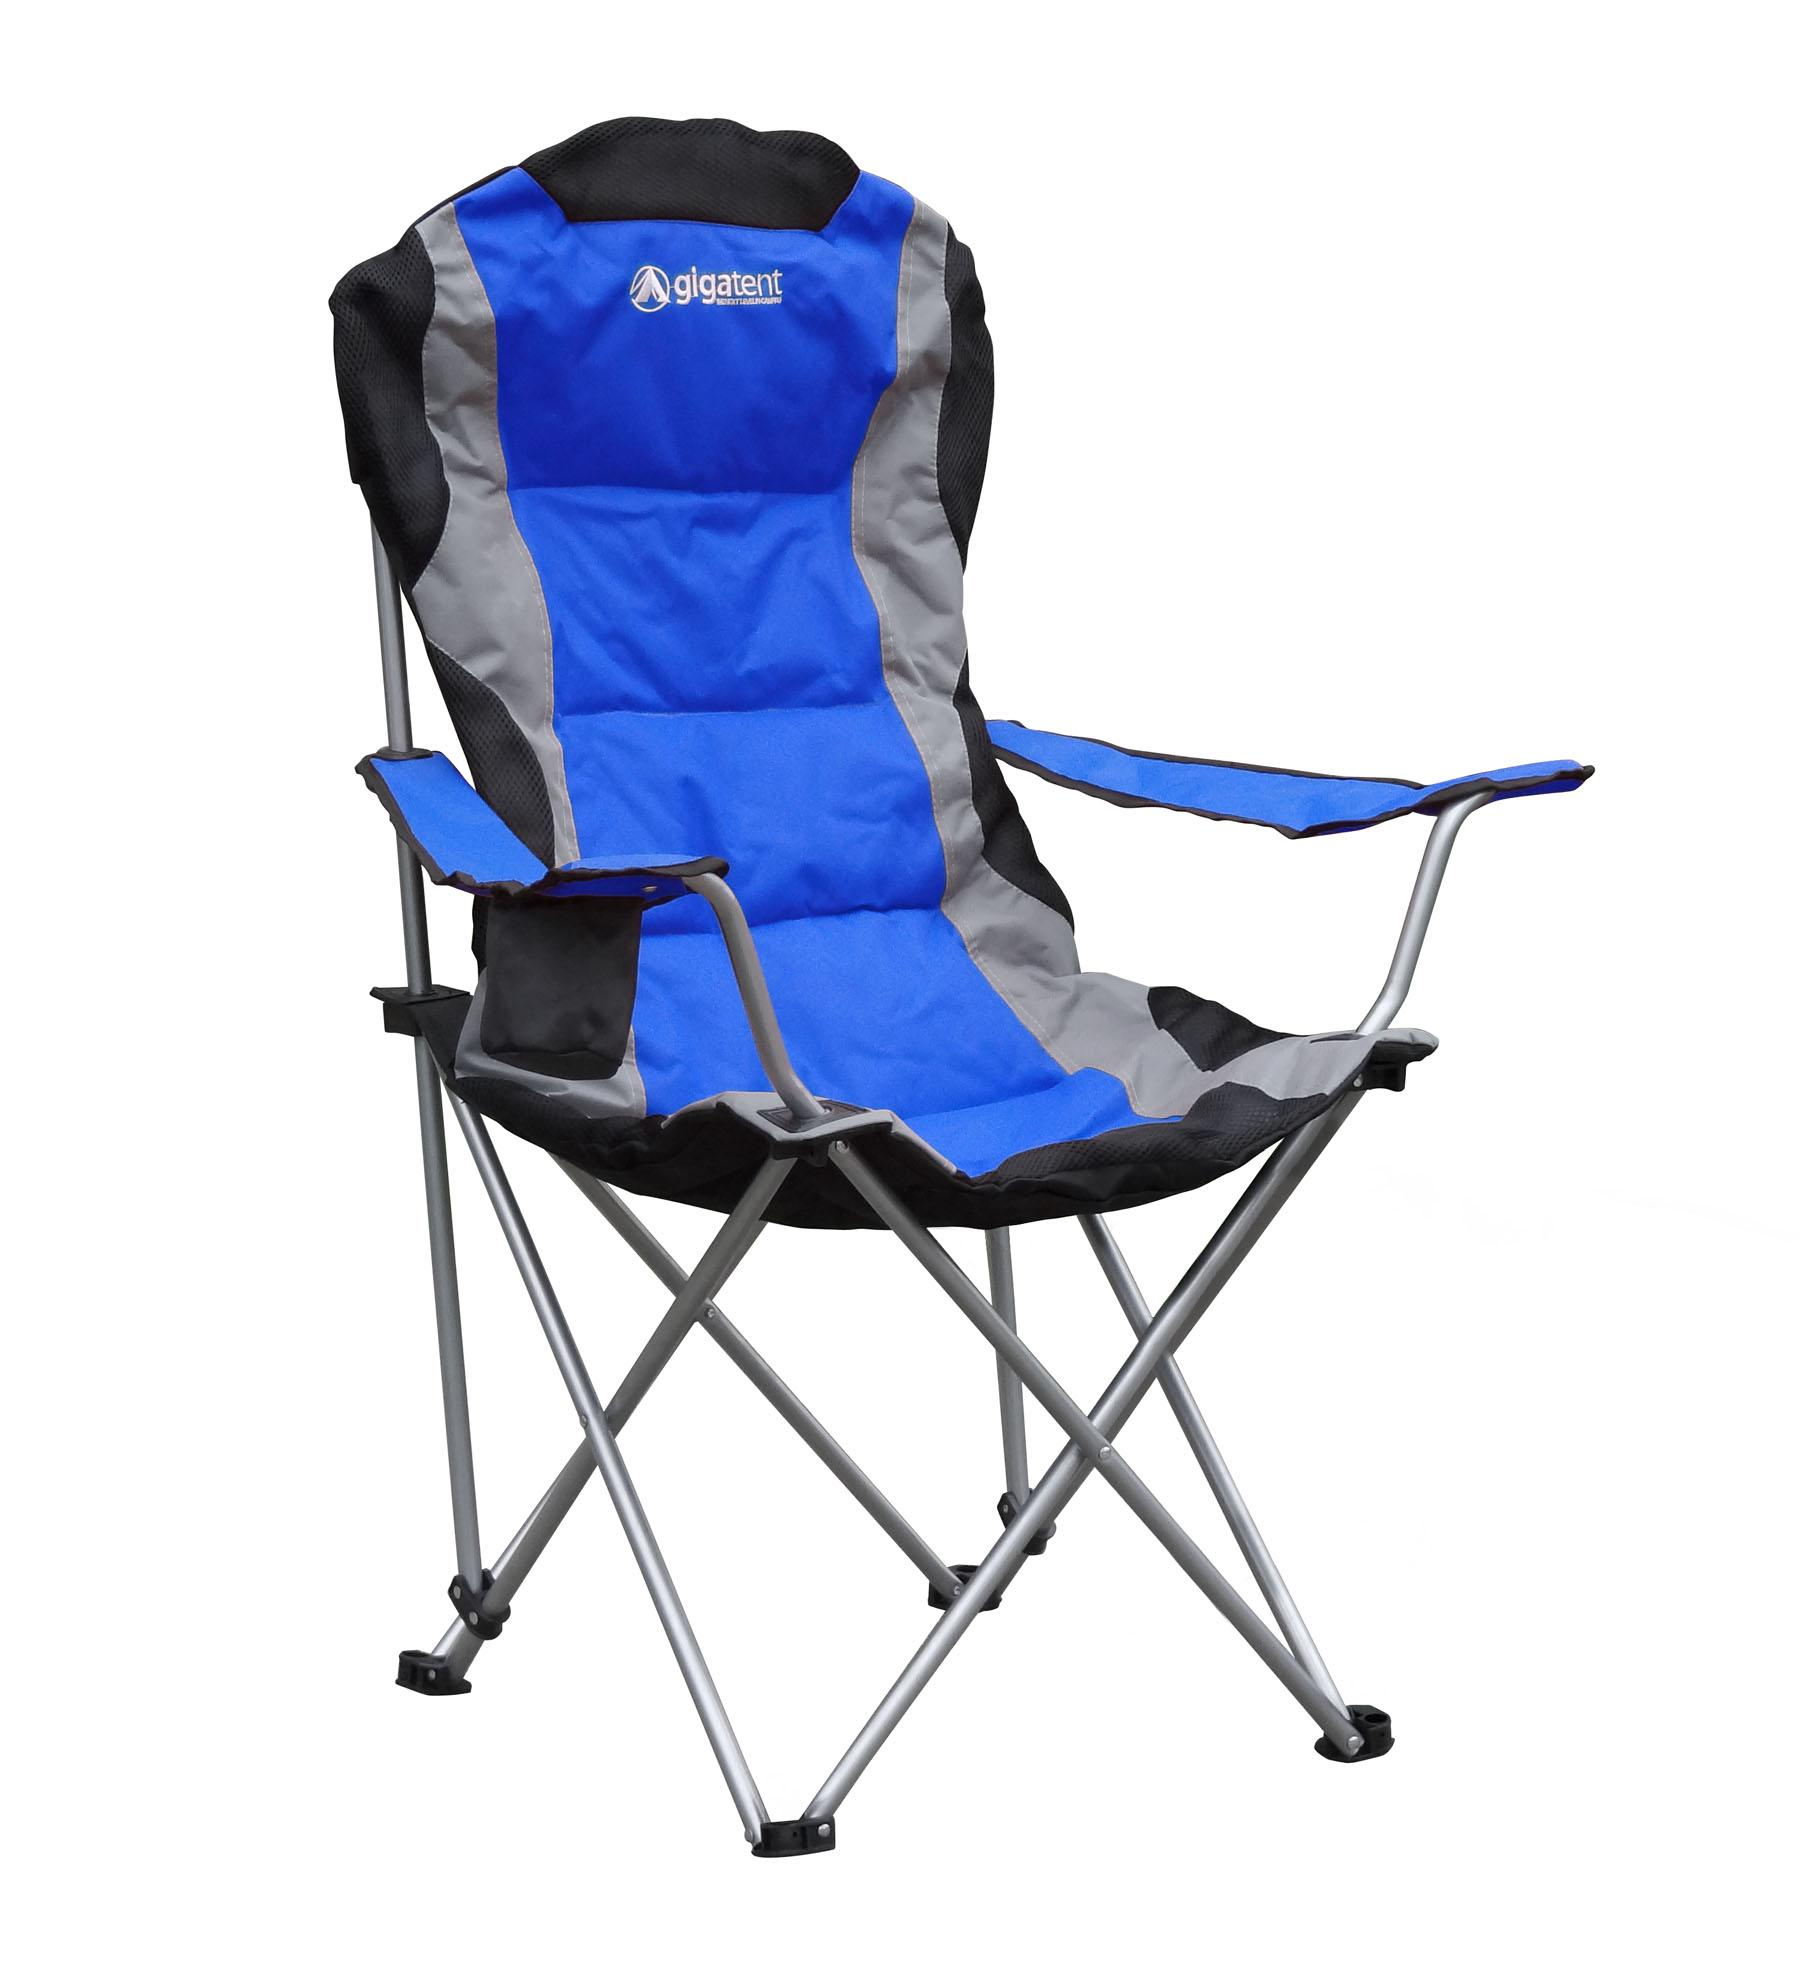 Amazon GigaTent Camping Chair Blue Sports & Outdoors